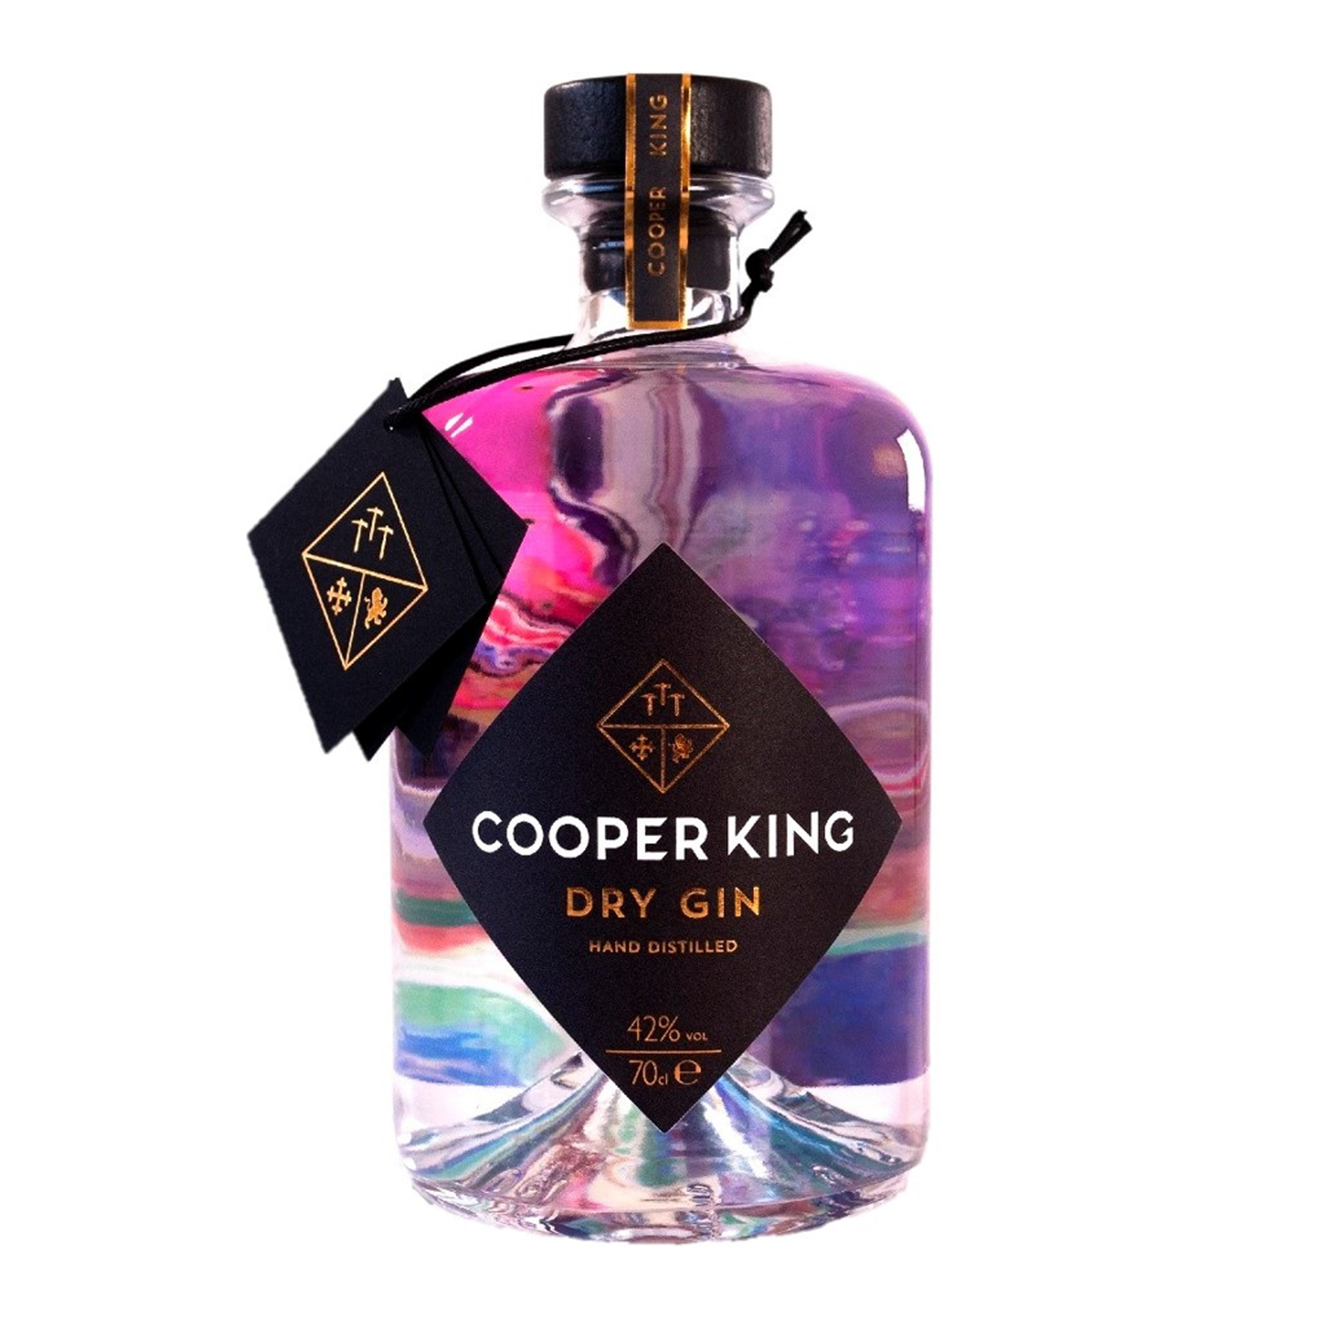 Cooper King Dry Gin